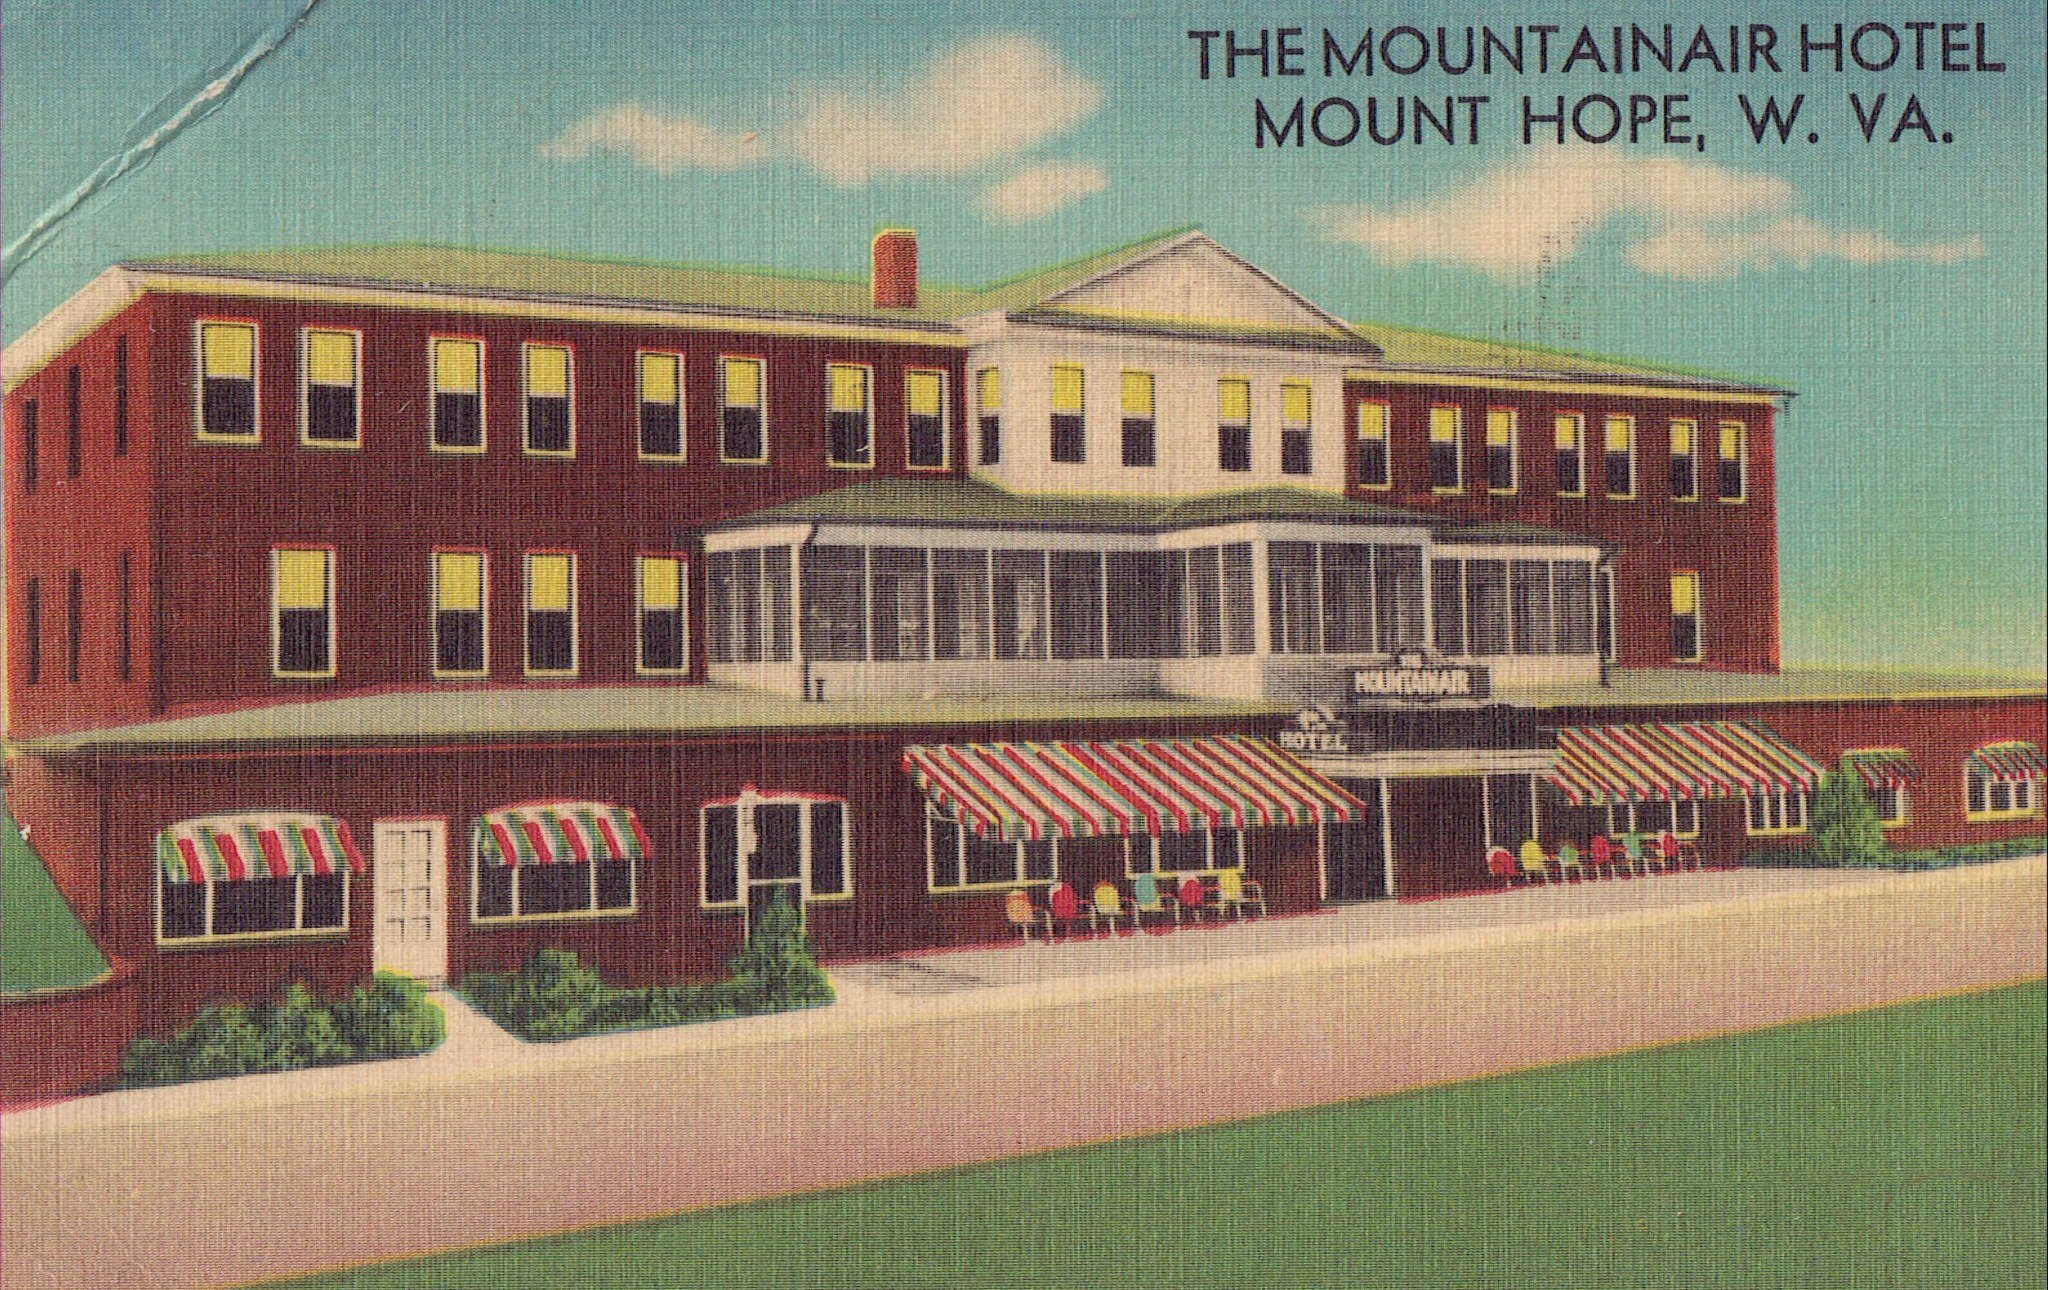 Postcard image of the Mountainair Hotel.